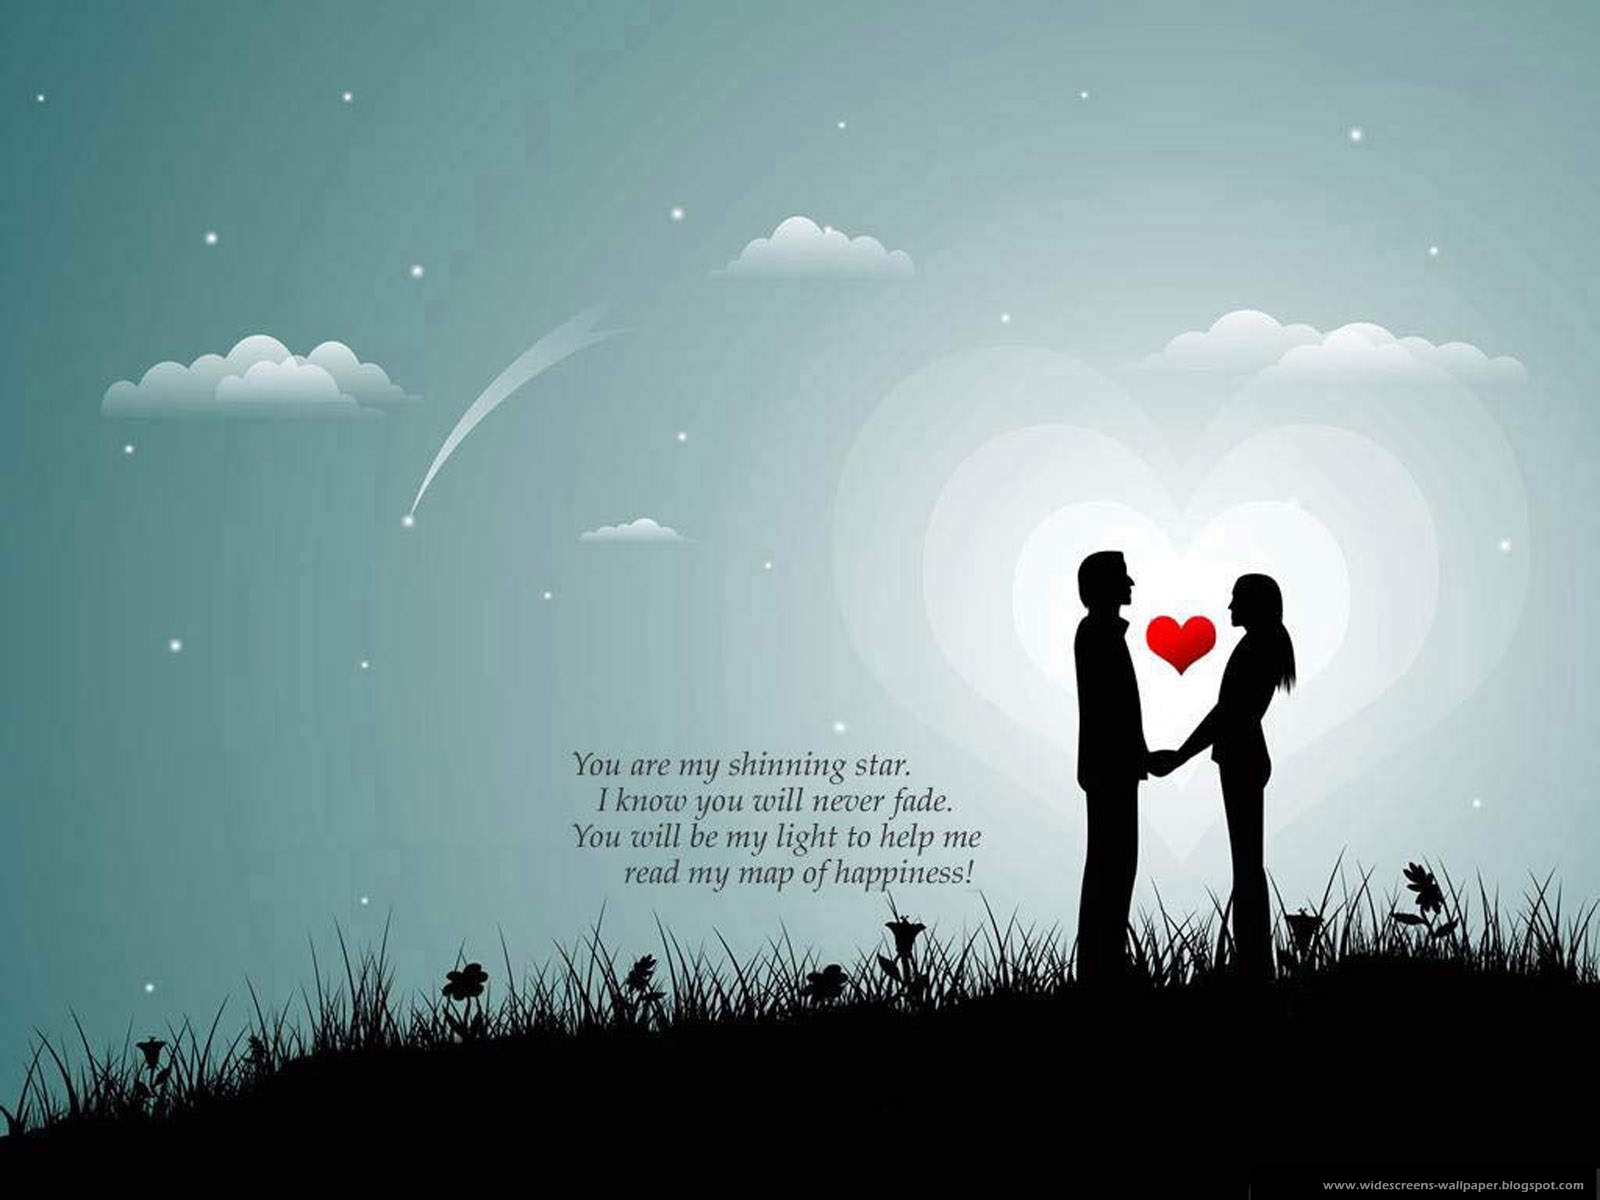 Romantic Love Wallpaper Images : Wallpaper collection For Your computer and Mobile Phones: New Romantic Love Words And Quotations ...